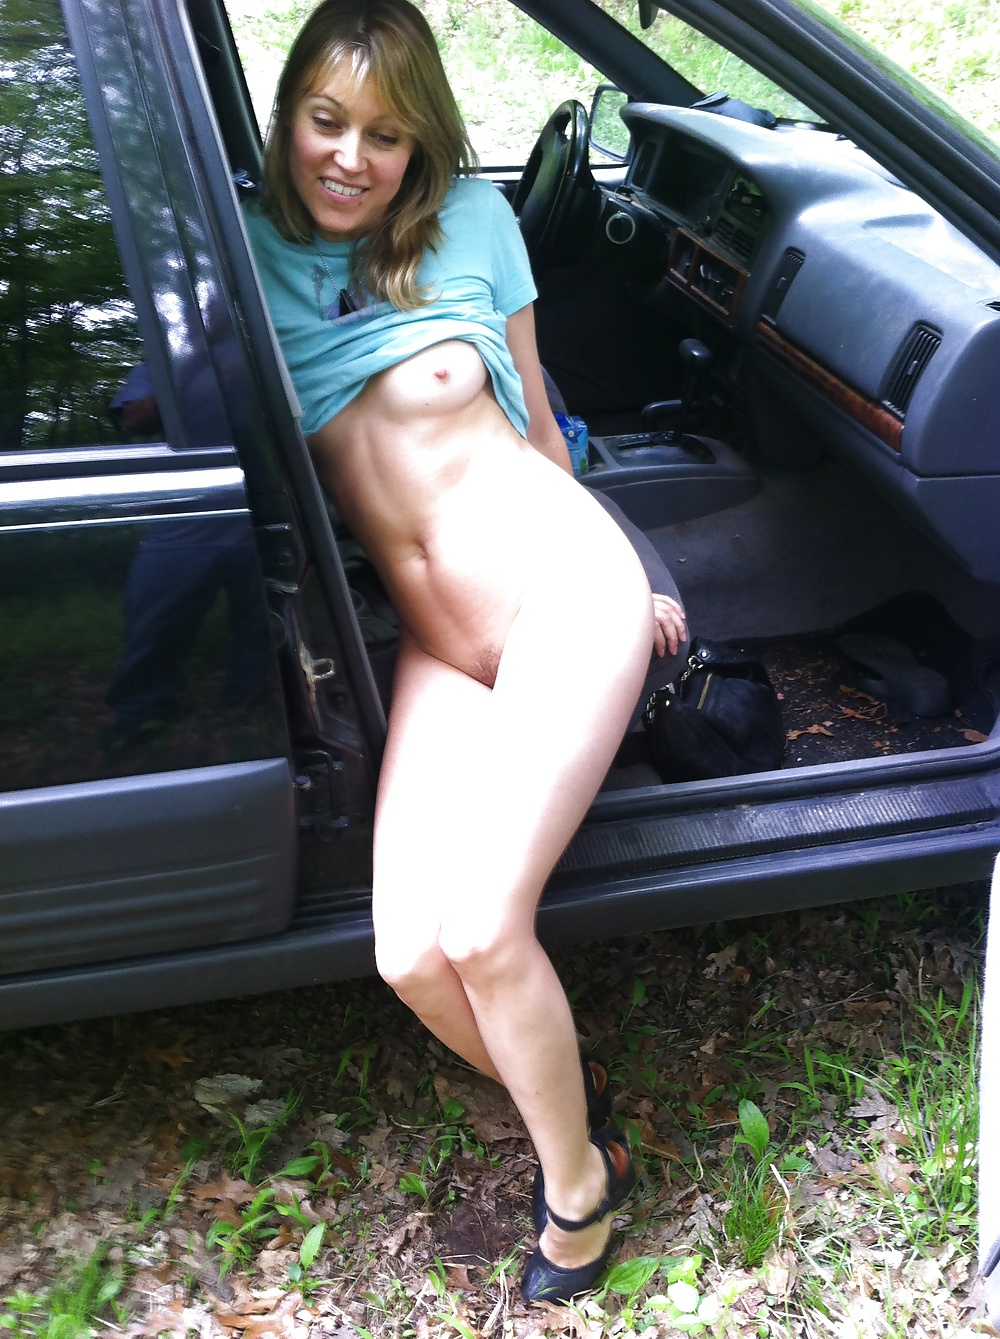 Amateur Blonde Girl Naked Fun in Car